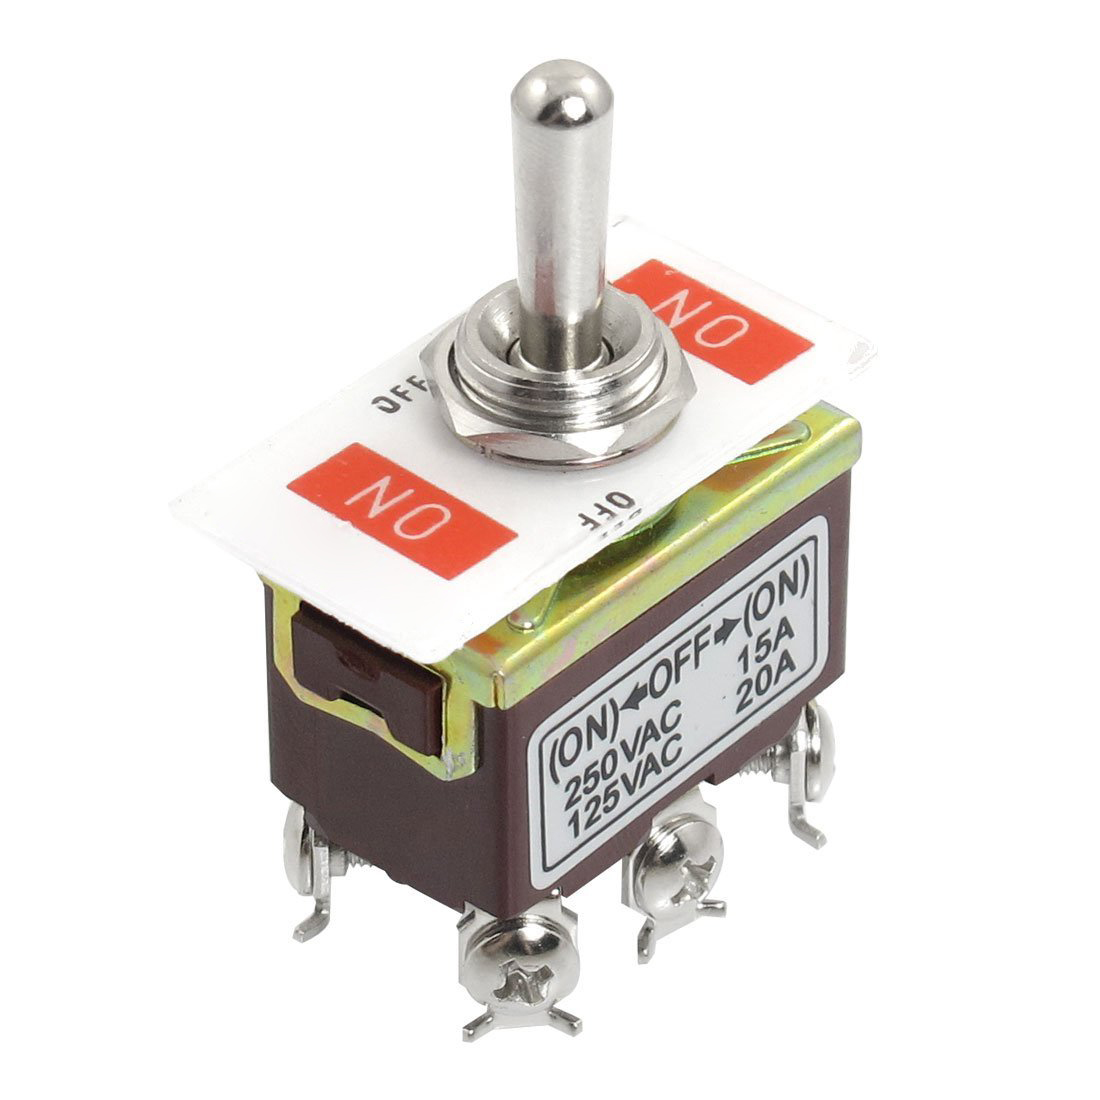 US $1.85 15% OFF|AC 250V/15A 125V/20A ON/OFF/ON 3 Position DPDT Momentary on 3 way switch wiring diagram, spst switch on-off-on wiring, 3 position switch wiring diagram, light switch wiring diagram, carling dpdt switch wiring diagram, starter switch wiring diagram, lighted toggle switch diagram, linear actuator switch wiring diagram, spst toggle switch wiring, on off on switch wiring diagram, dpdt toggle switch diagram, 6 prong toggle switch diagram, three terminal rocker switch diagram, rotary switch wiring diagram, spdt switch wiring diagram, single pole double throw switch wiring diagram, spst illuminated rocker switch wiring, momentary switch wiring diagram, 700r4 vacuum switch installation diagram, carling lighted switch wiring diagram,